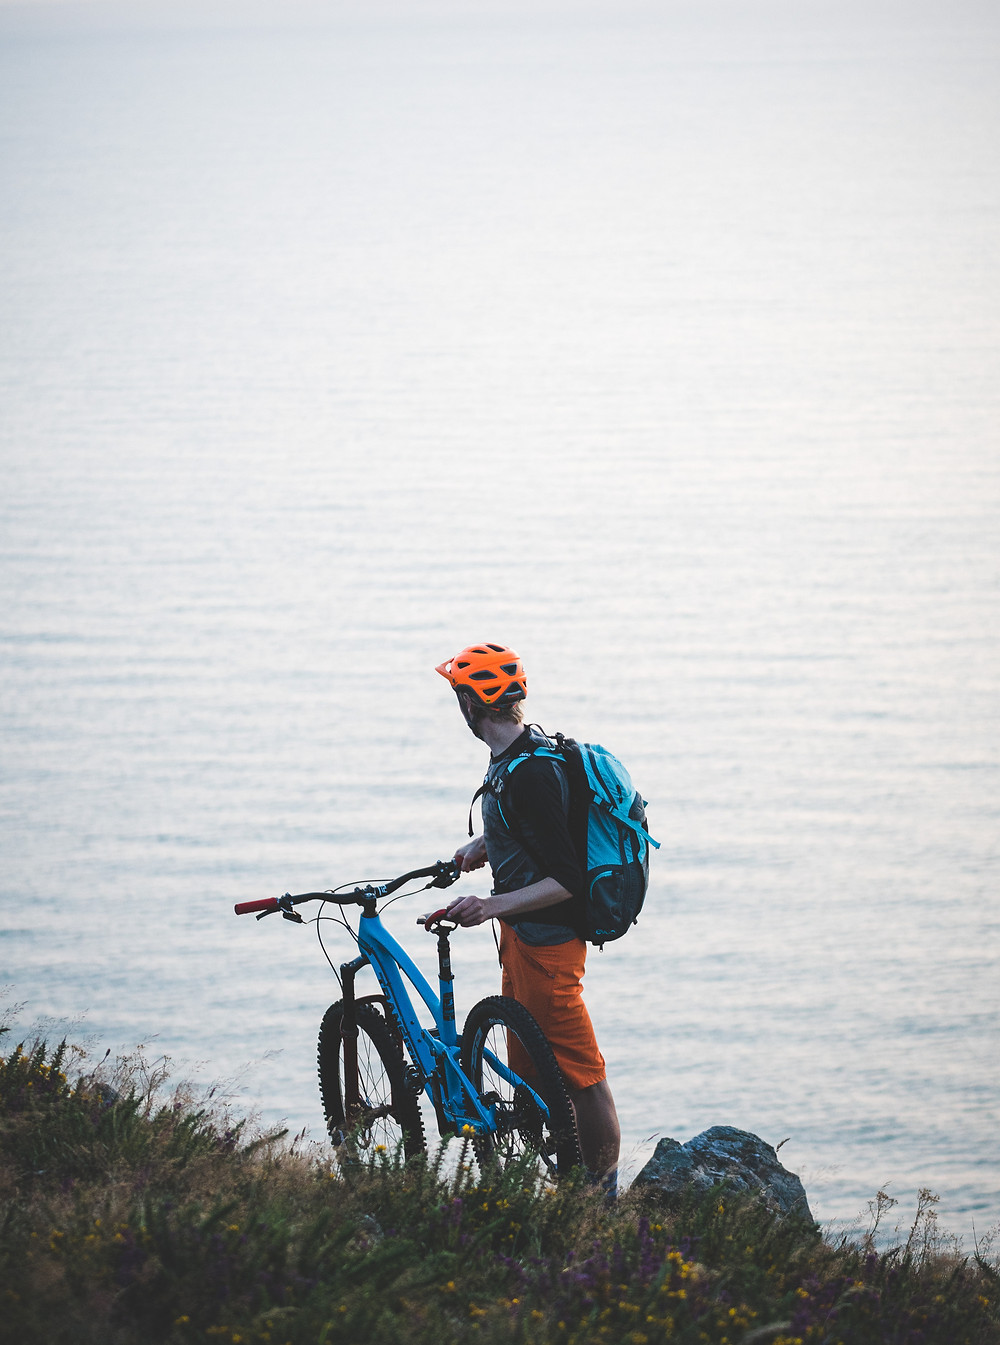 colm keating, mountain biker looking out to sea, bray head, ireland, iosac coleman,